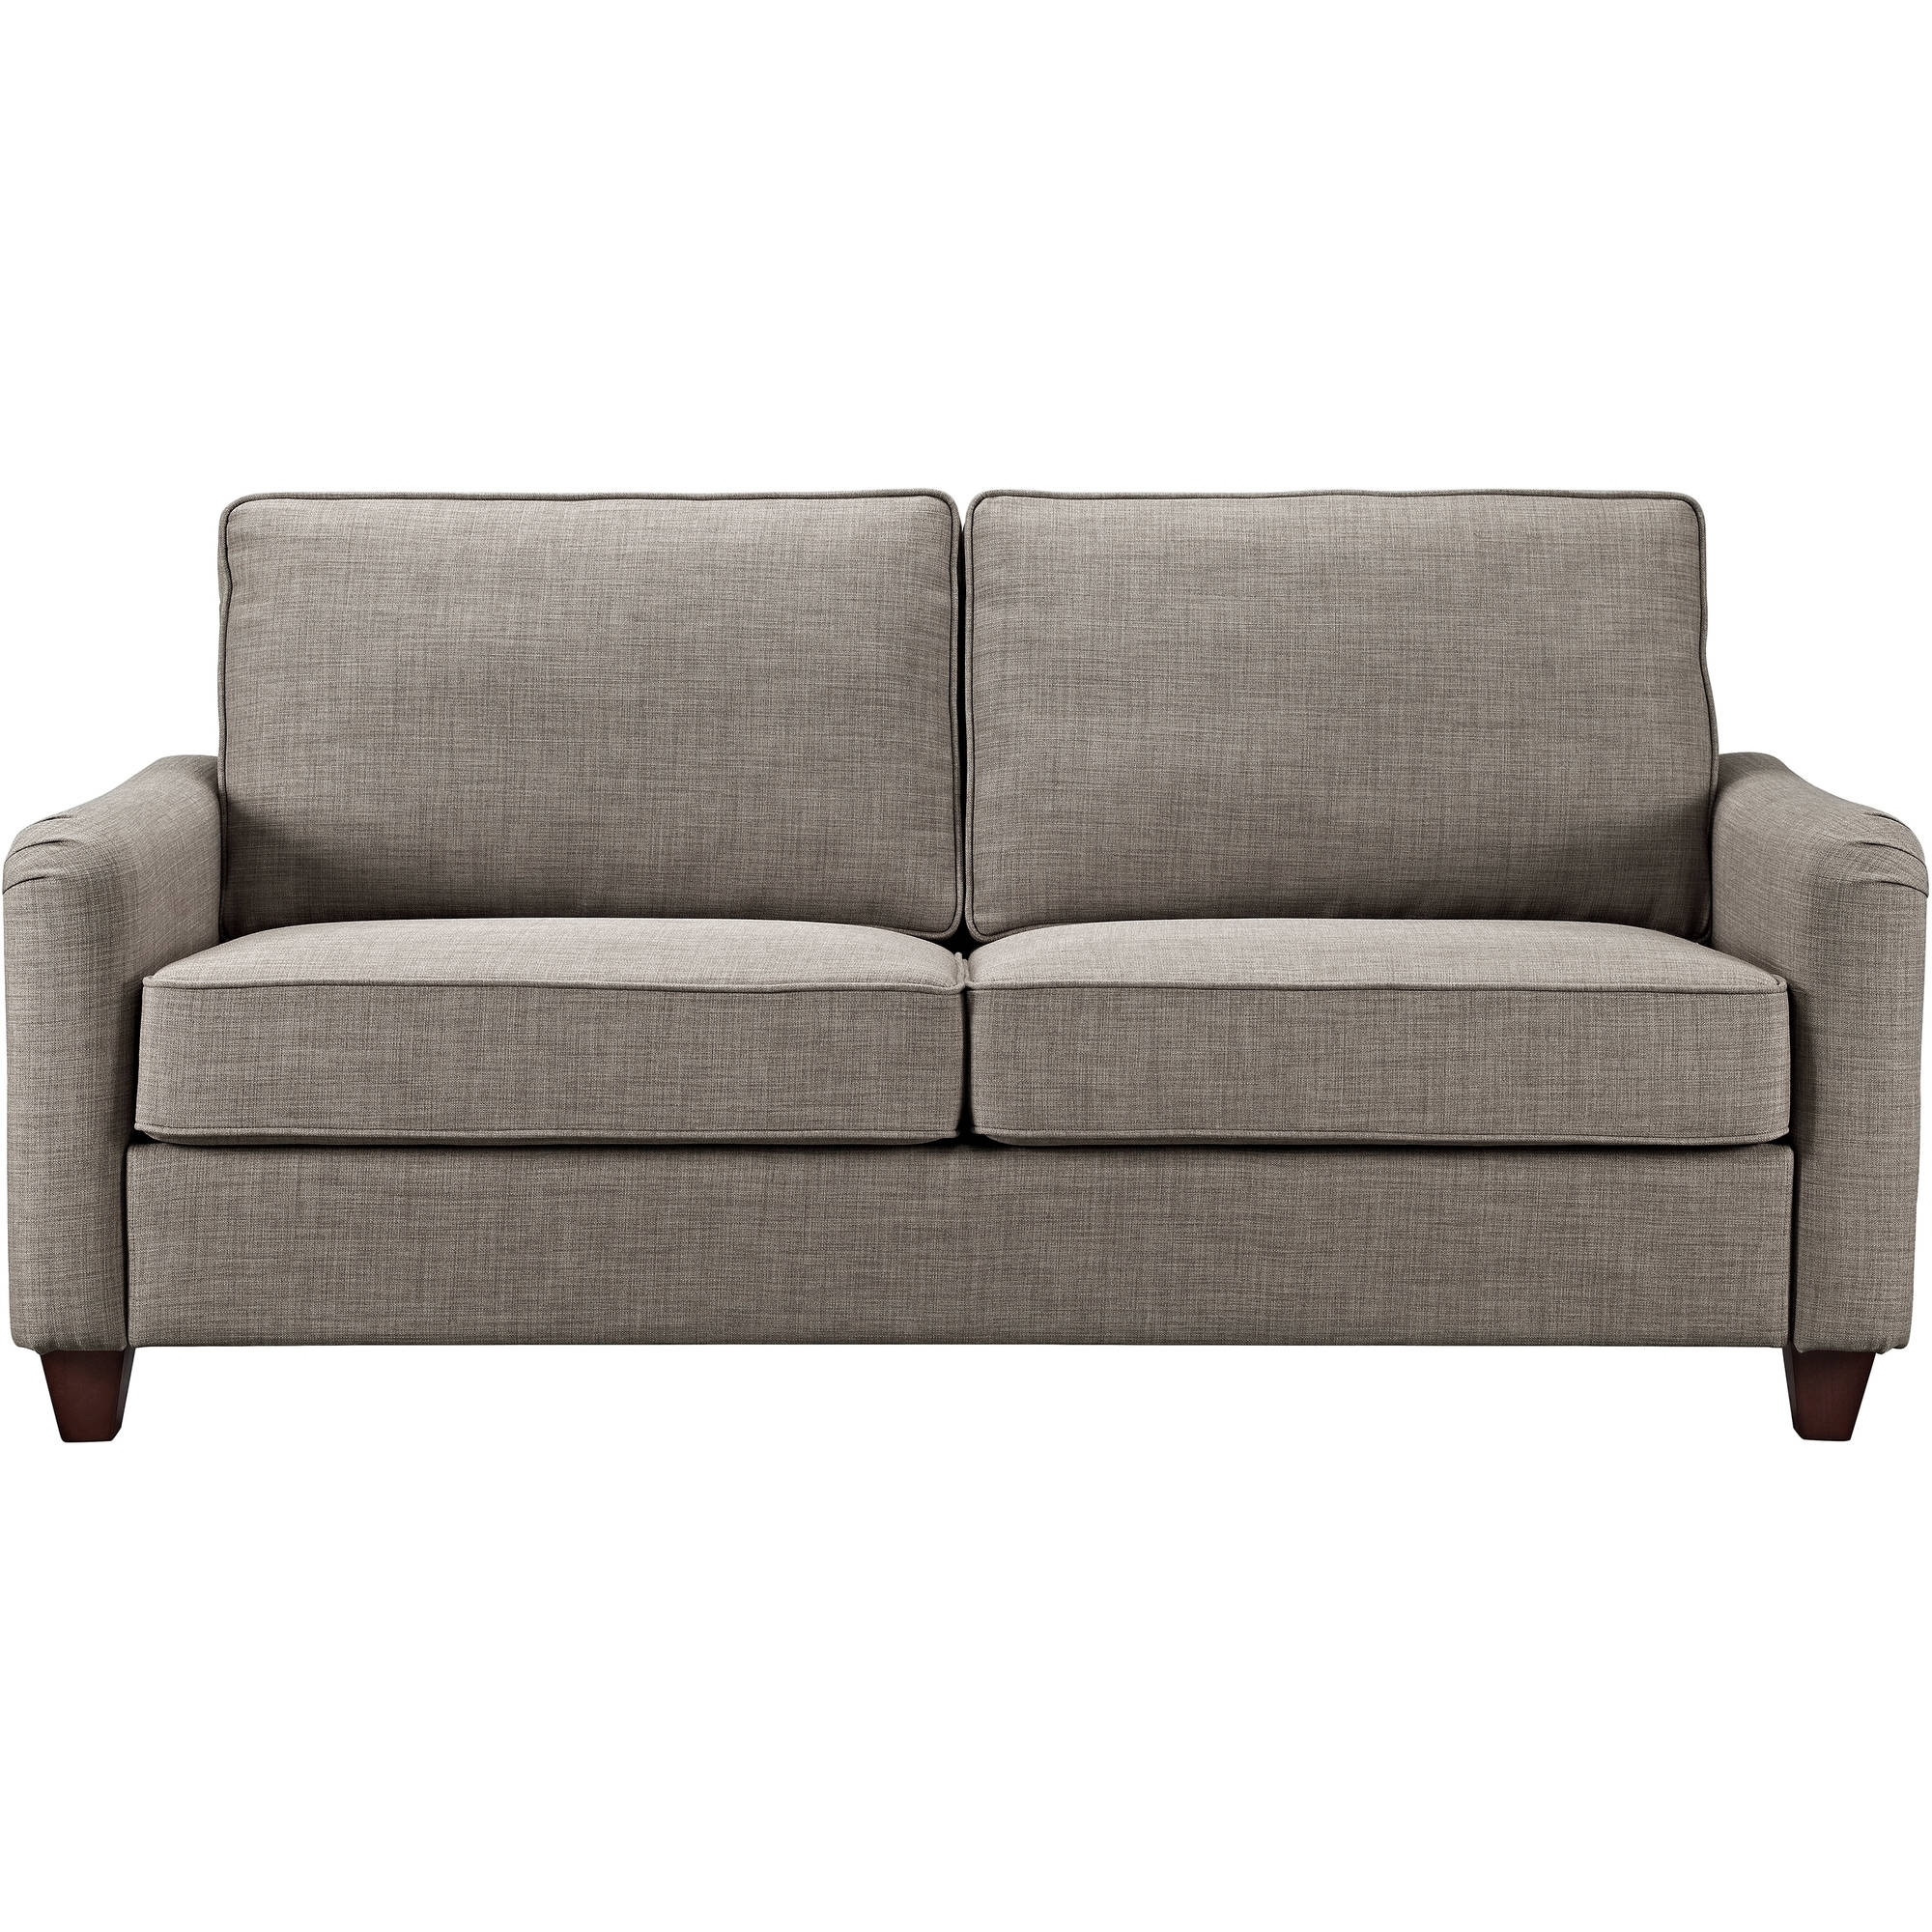 Preferred Living Room Furniture Inside Sofa Chairs For Living Room (View 15 of 20)